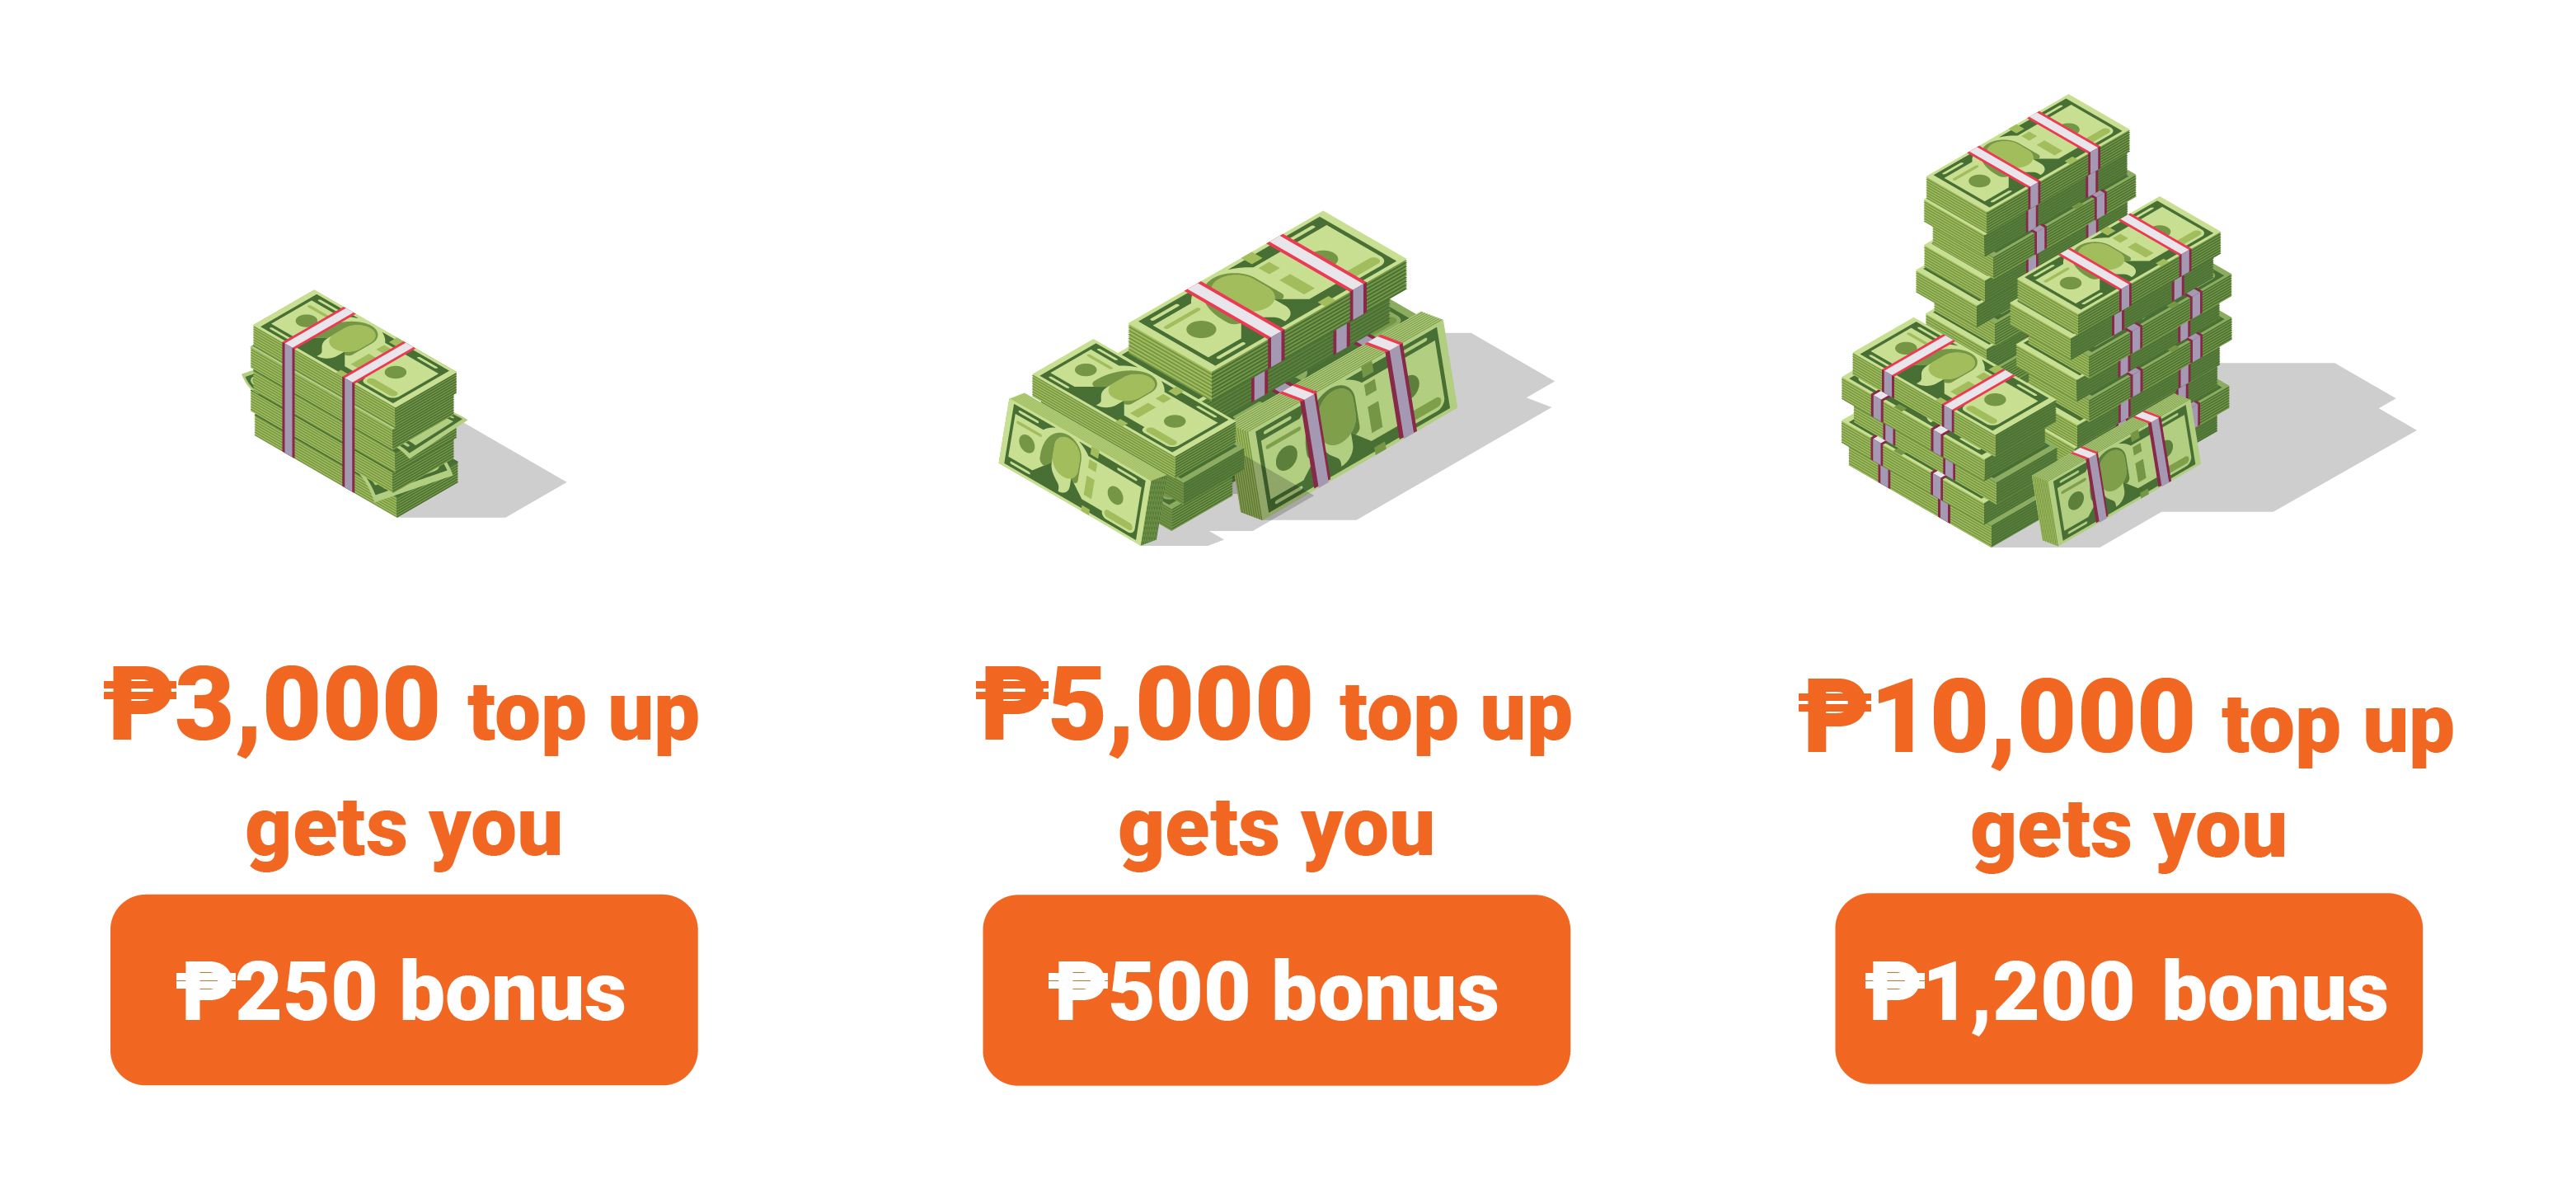 top up bonus for lalamove corporate clients-01